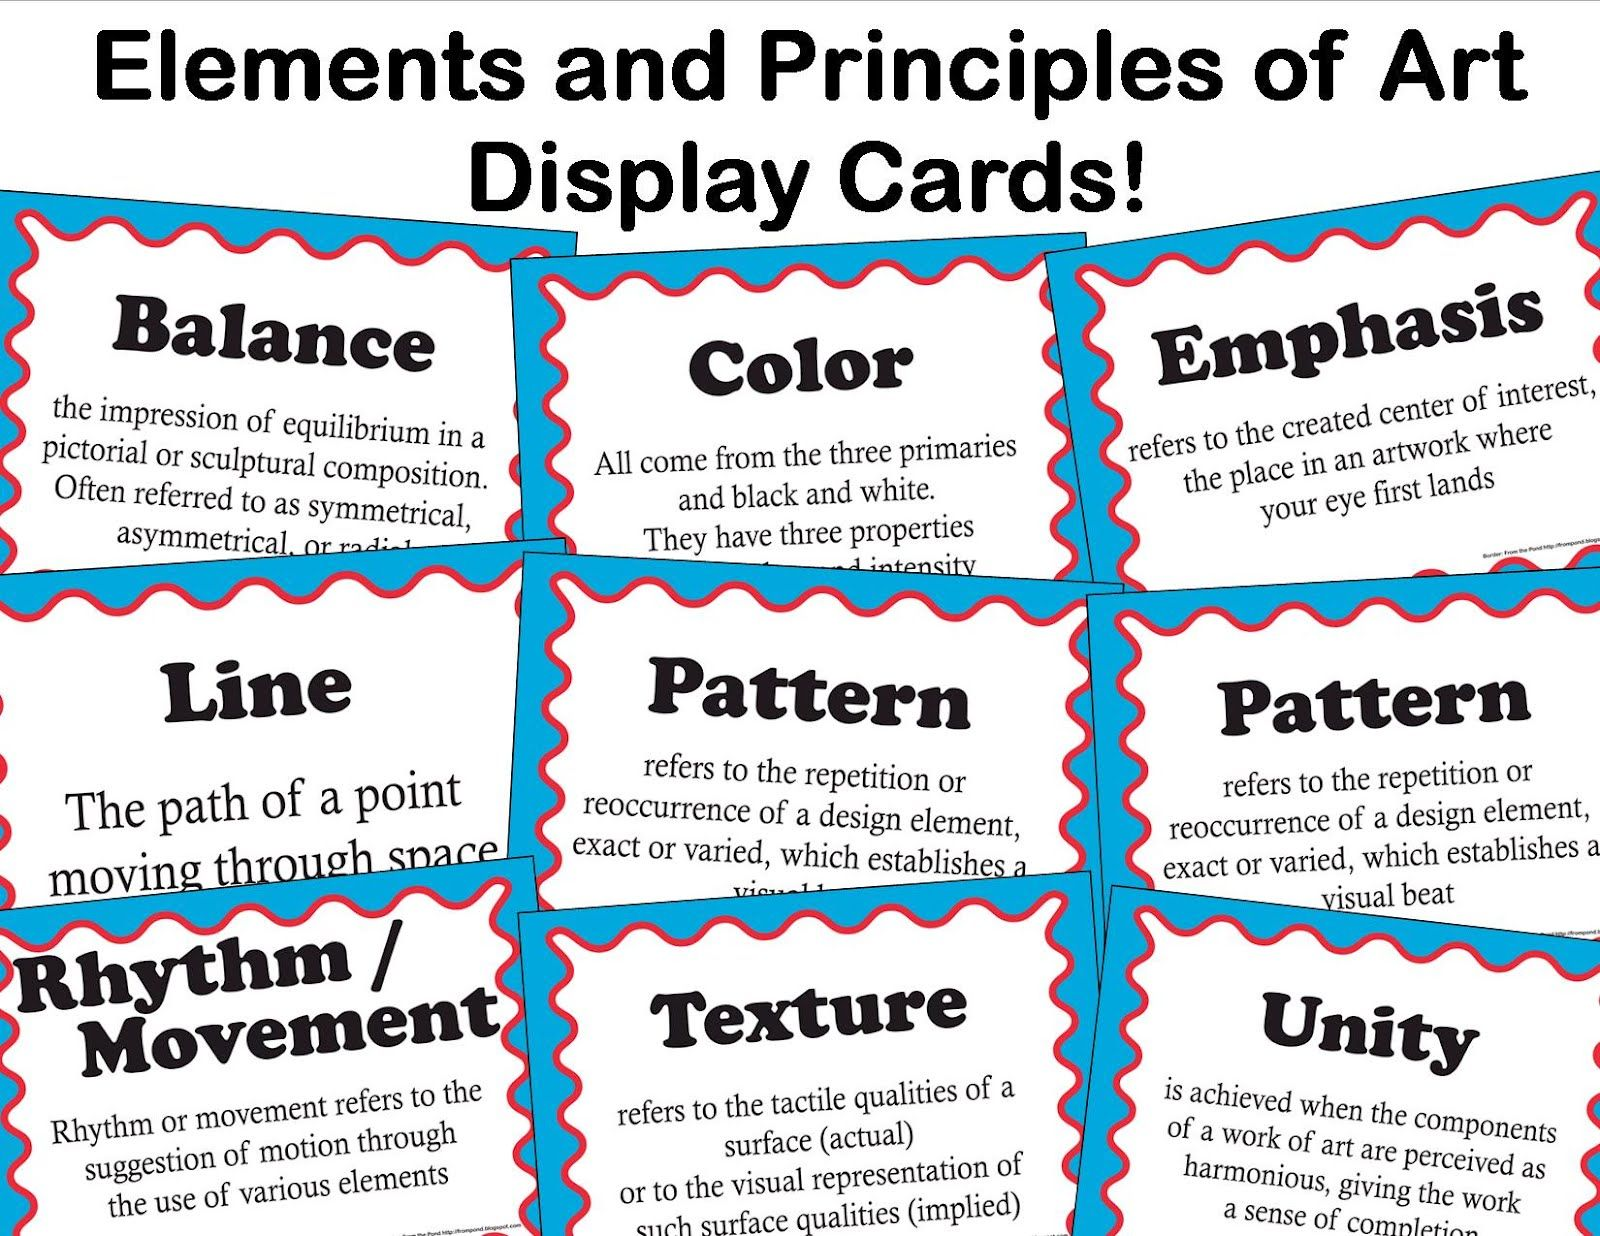 Elements Of Arts And Its Meaning : Elements and principles of art display cards from artful